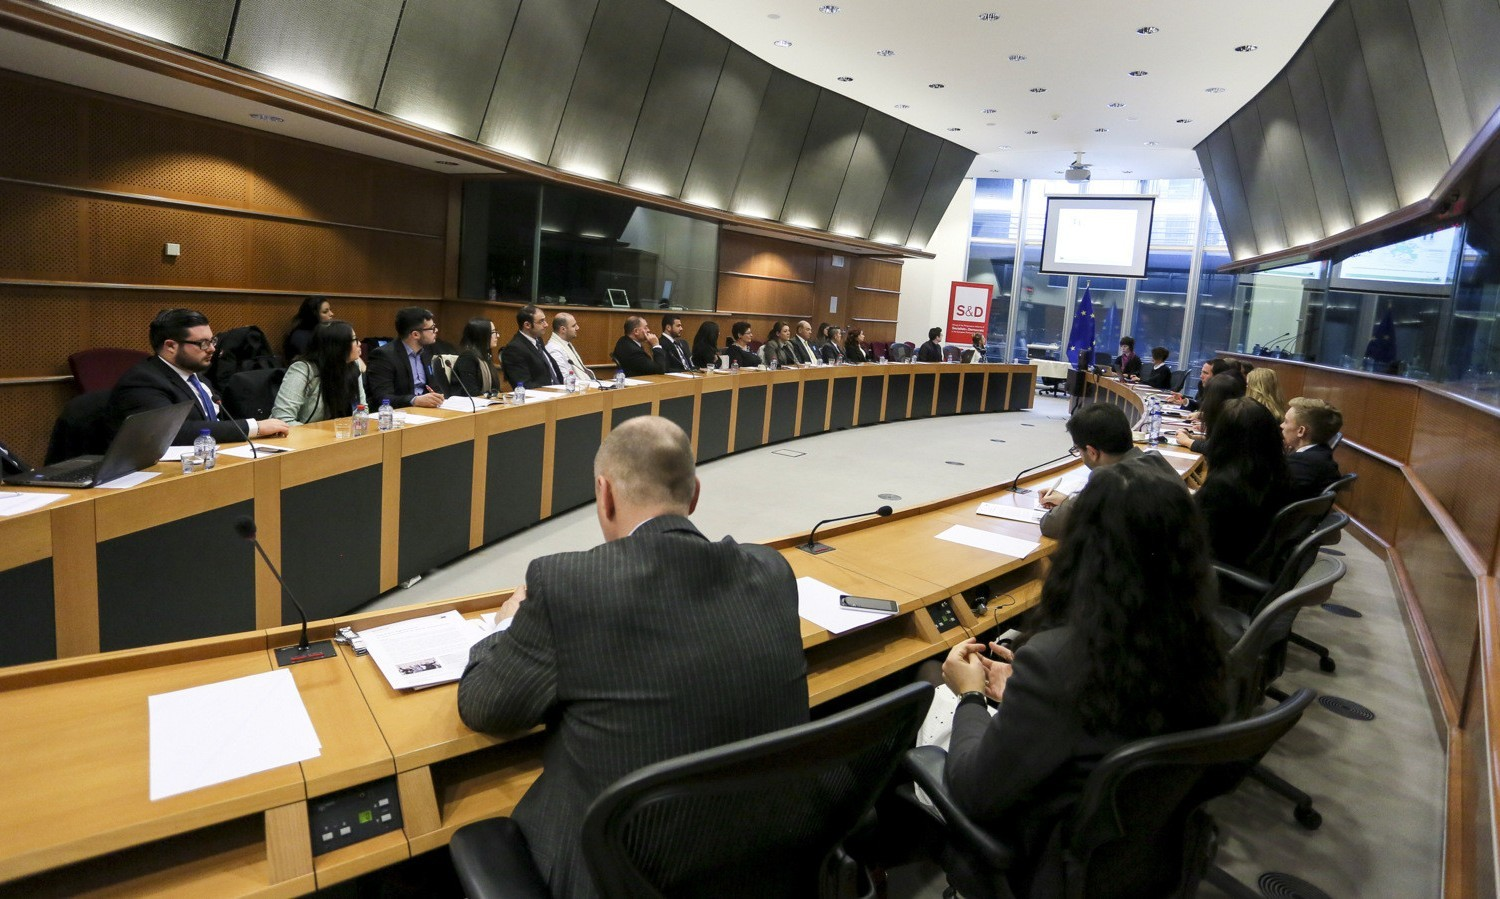 Conference on climate change - Climate challenges from an energy perspective on February 18, 2016 / European Union 2016 - EP/PE